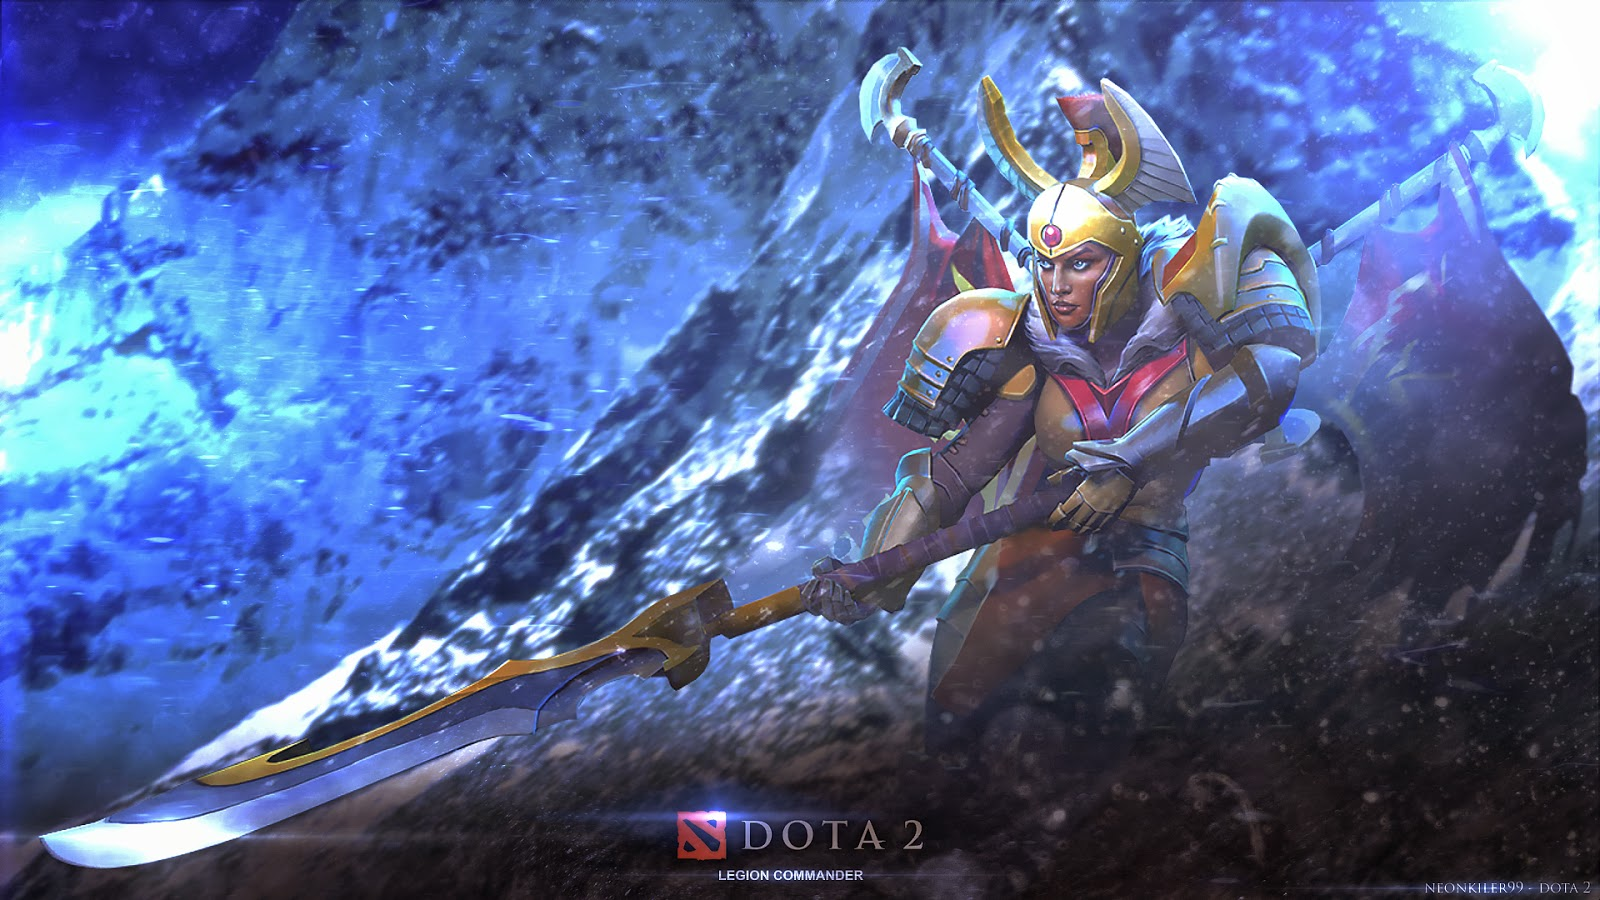 Legion Commander dota 2 wallpaper